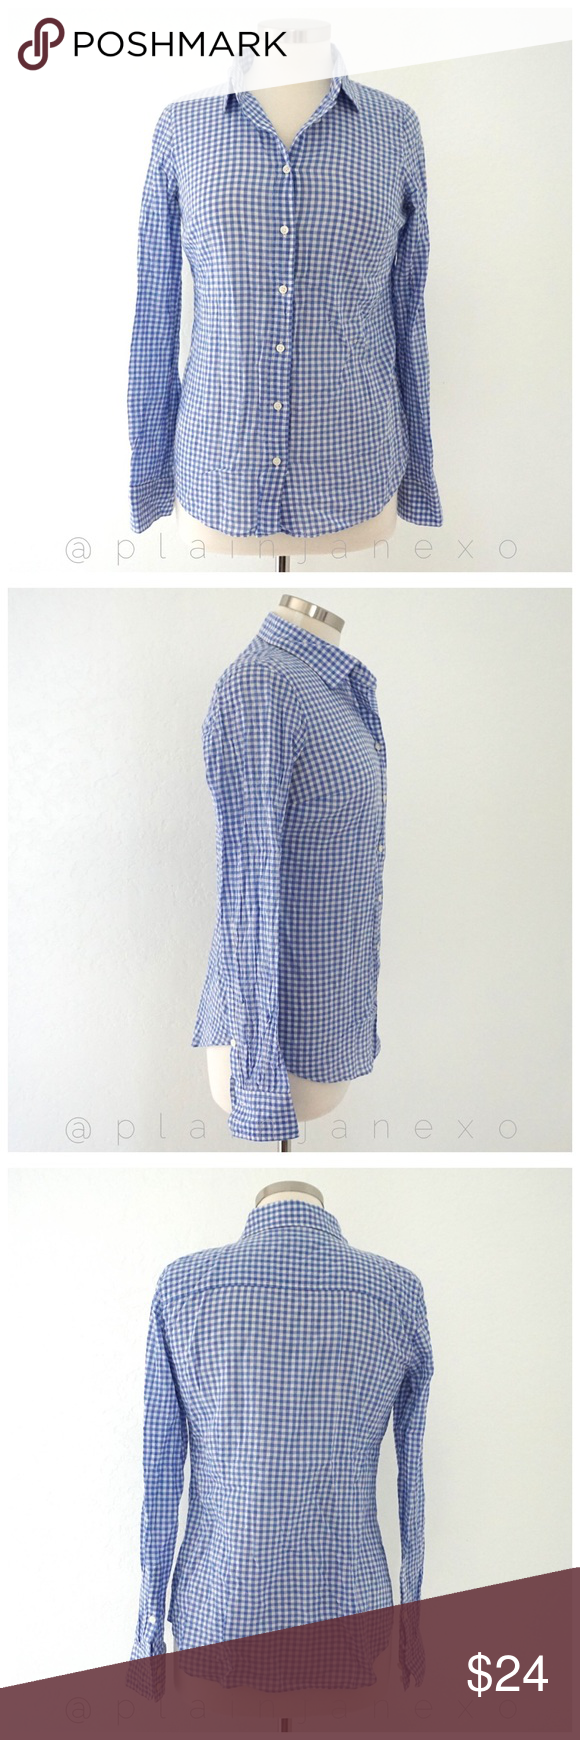 """J crew suckered gingham classic button down Like new condition. Size: XS. Bust: 36"""", sleeve length: 24"""", length: 25"""". Machine wash J. Crew Tops Button Down Shirts"""